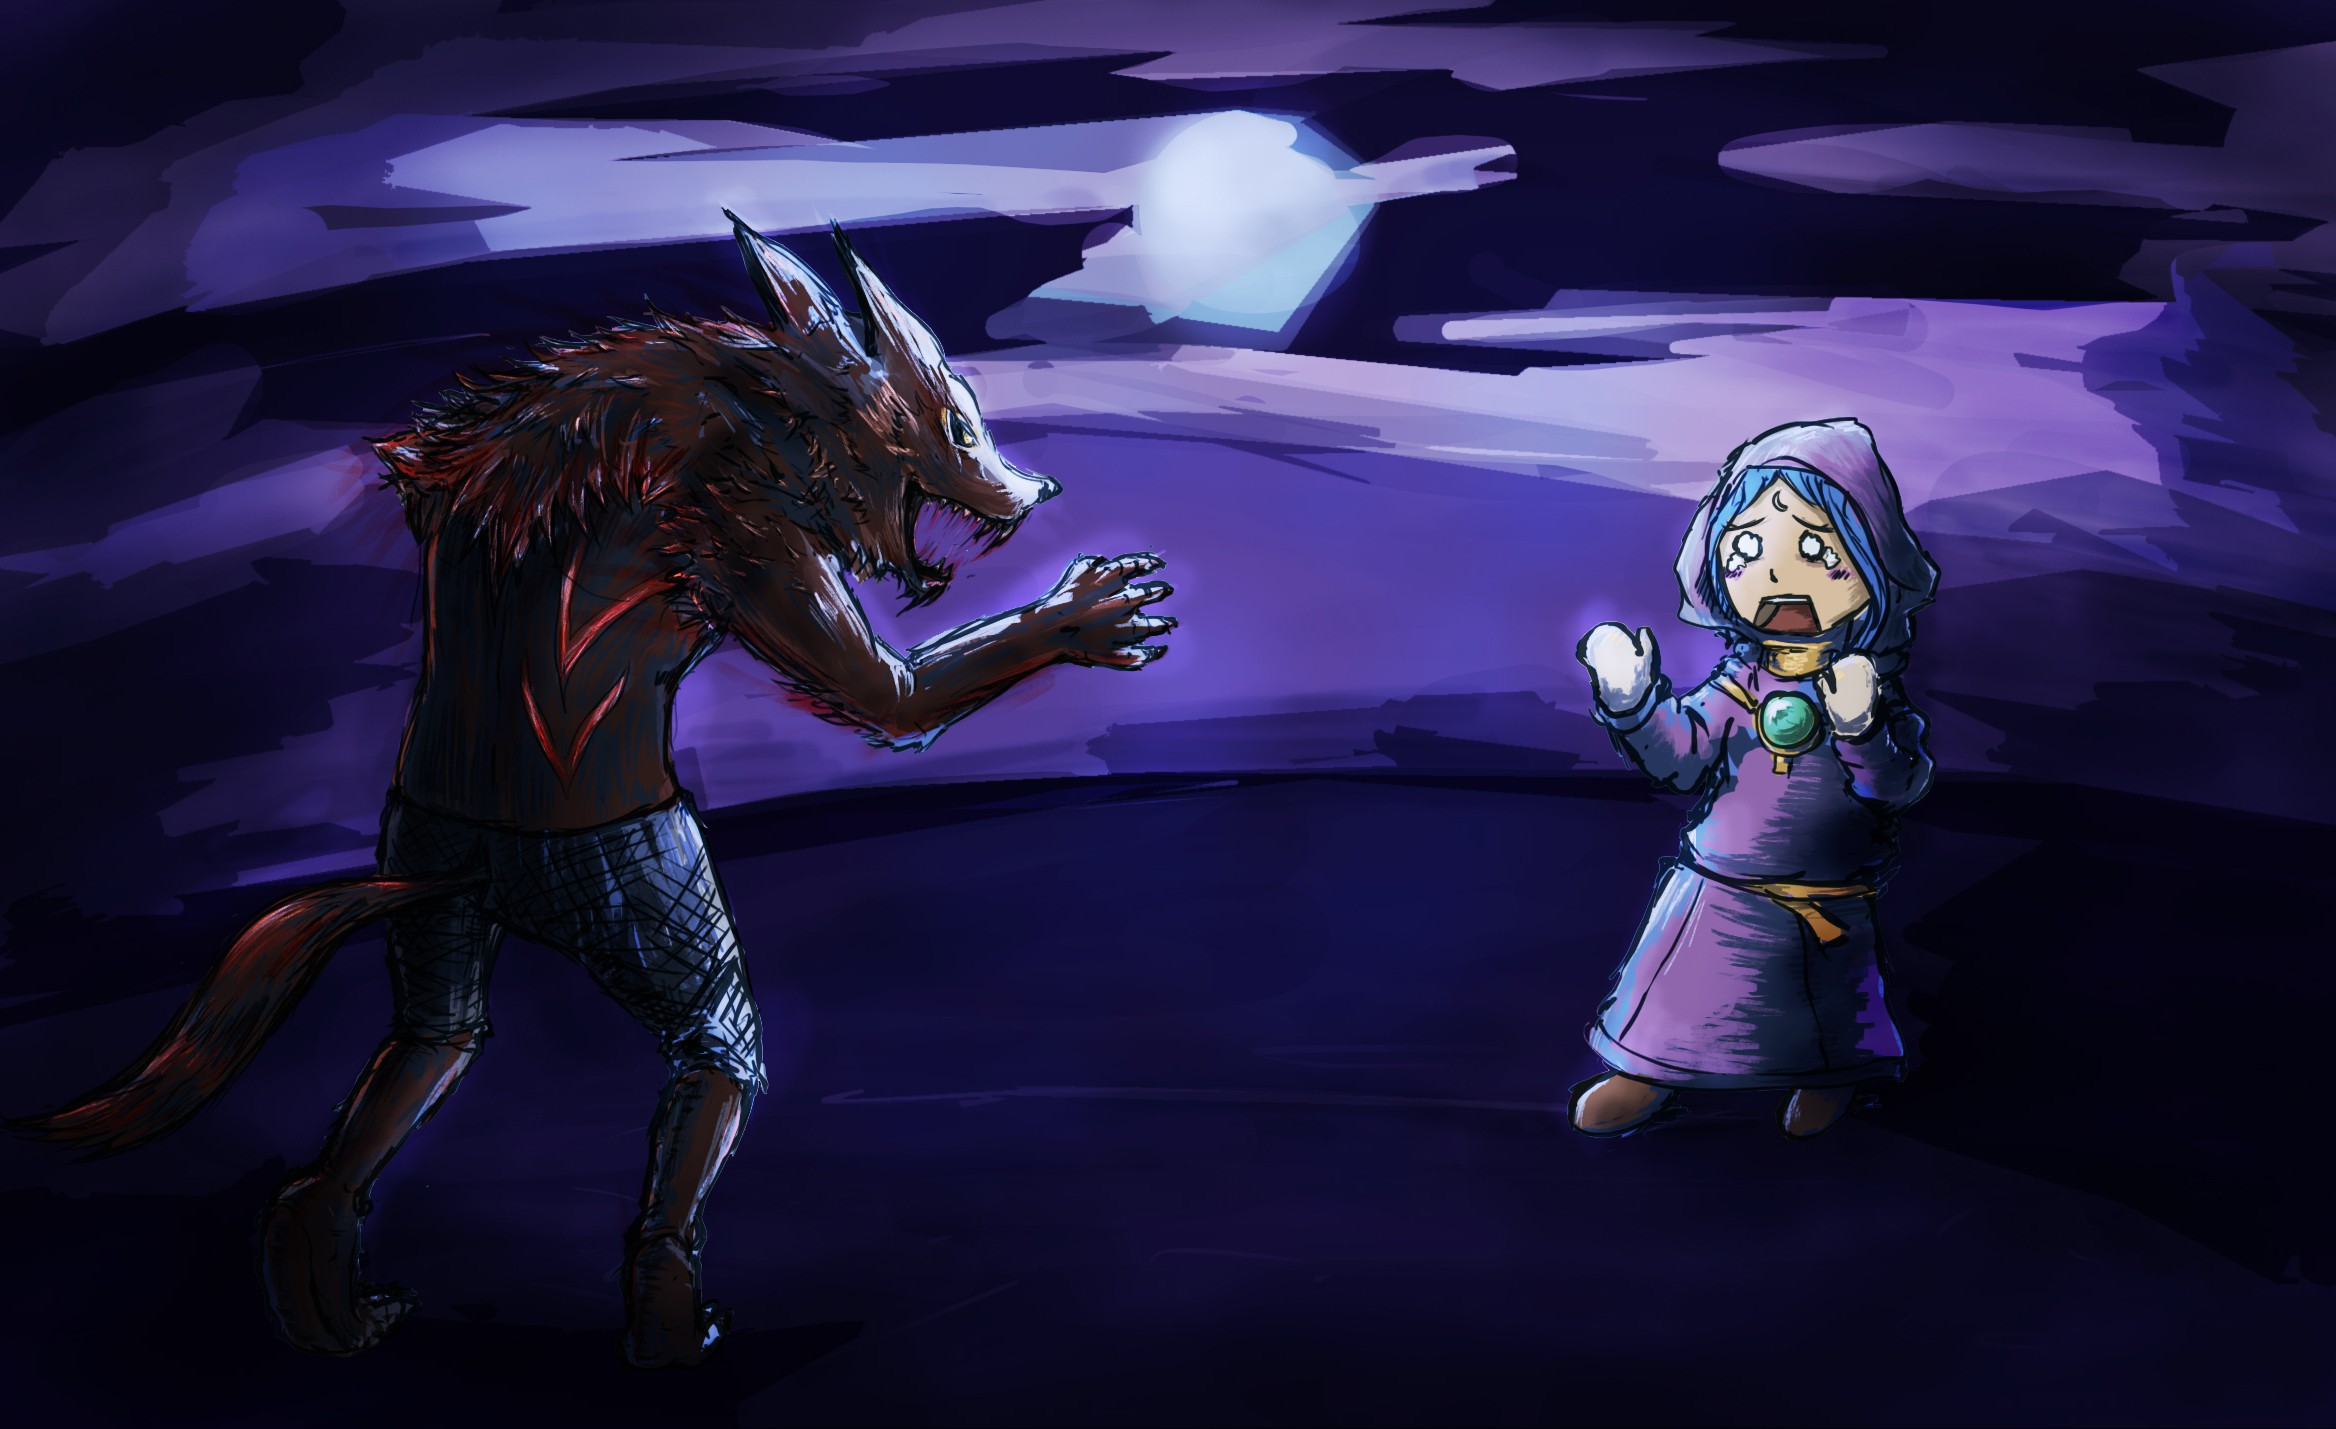 Design a beautiful illustration for our werewolf games!